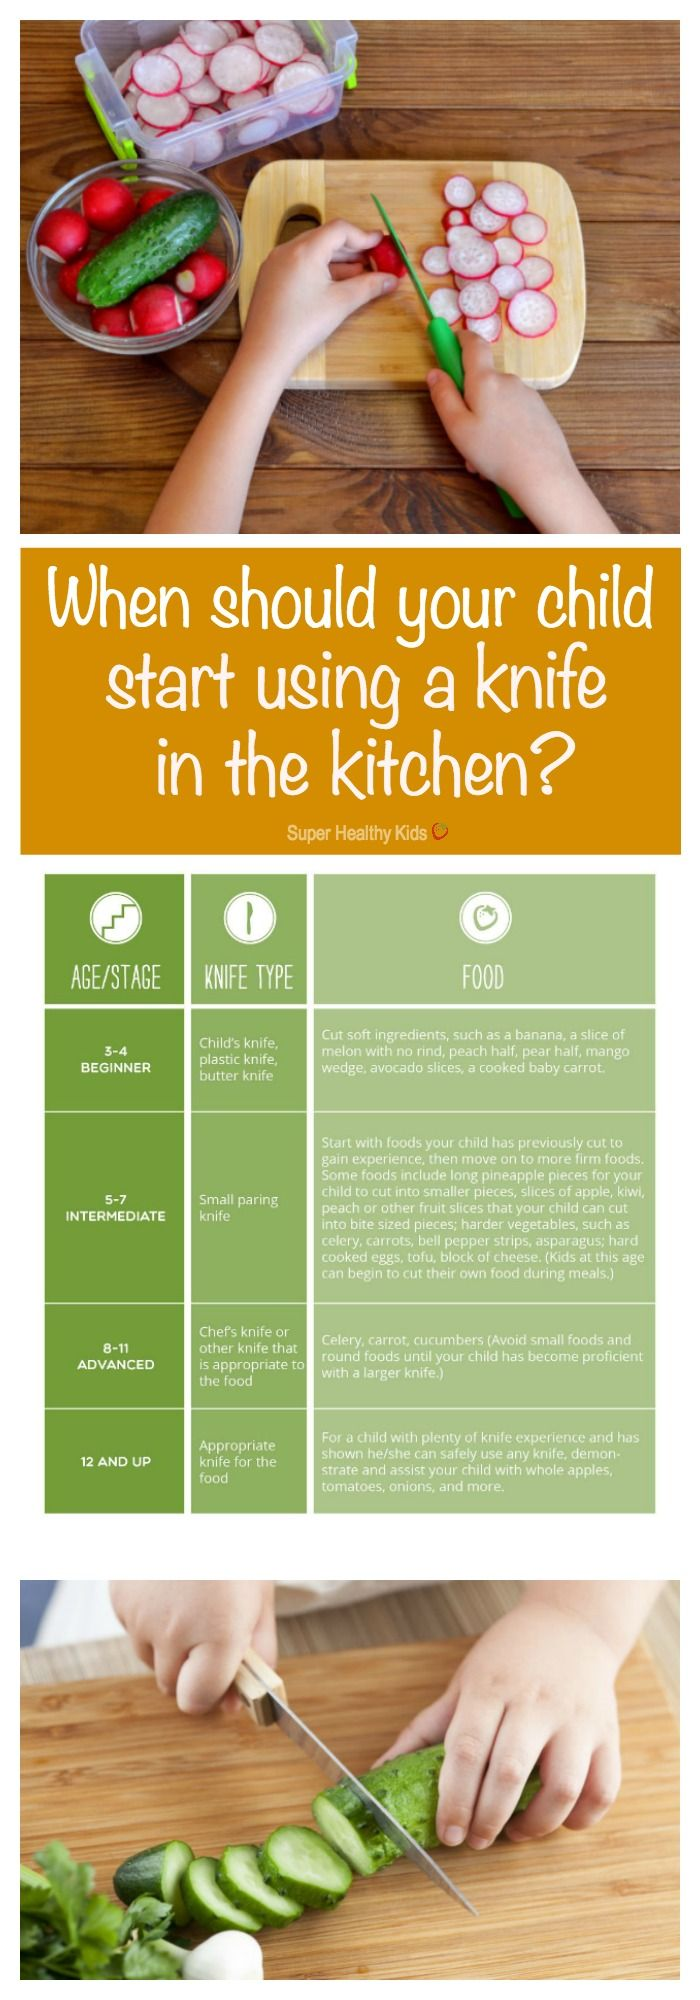 Knife Skills for Kids in the Kitchen. Cooking classes